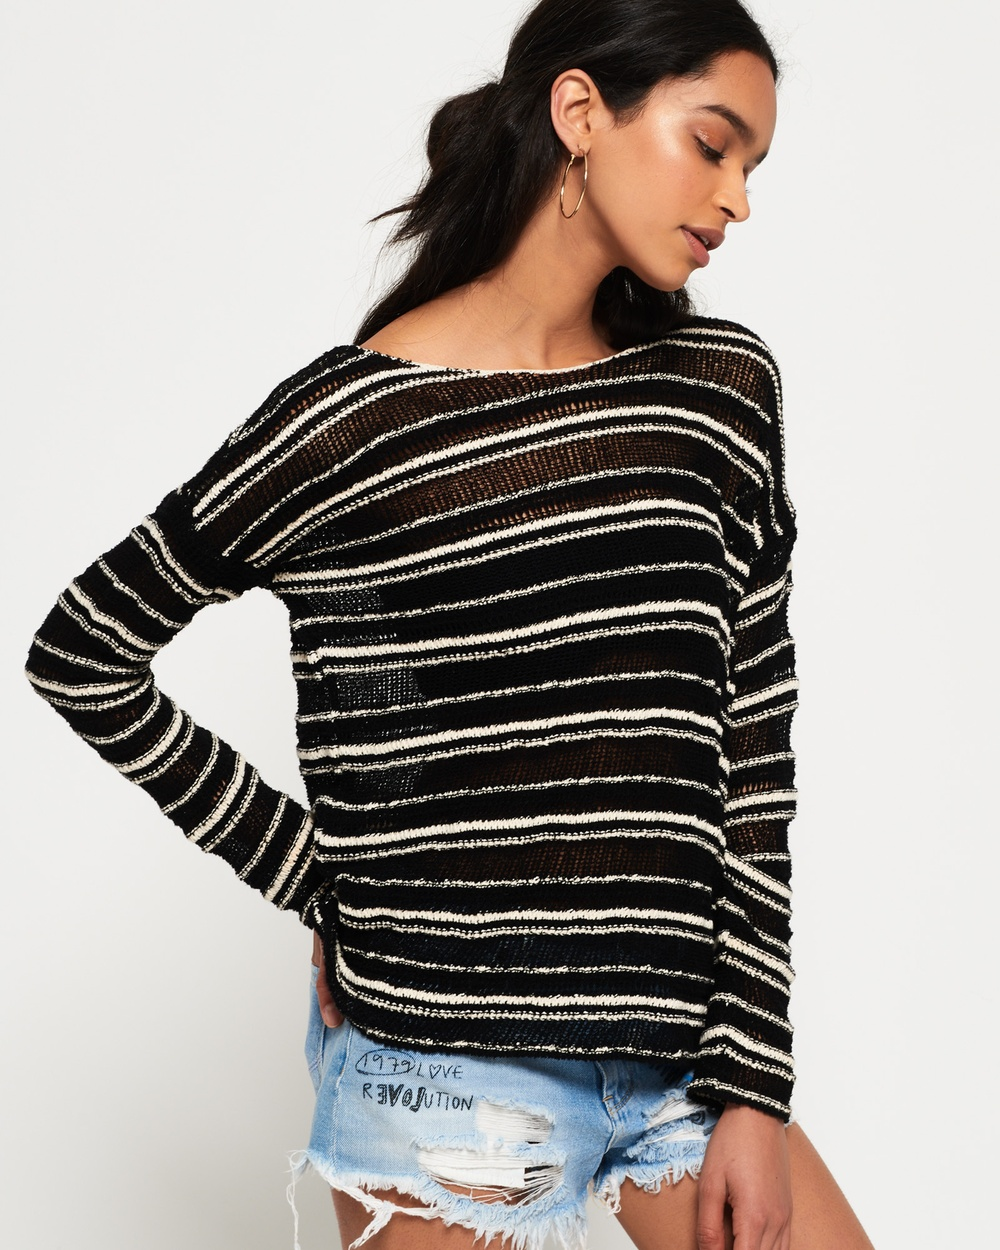 Superdry Evie Textured Slouch Knit Jumper Tops BLACK/CREAM Evie Textured Slouch Knit Jumper